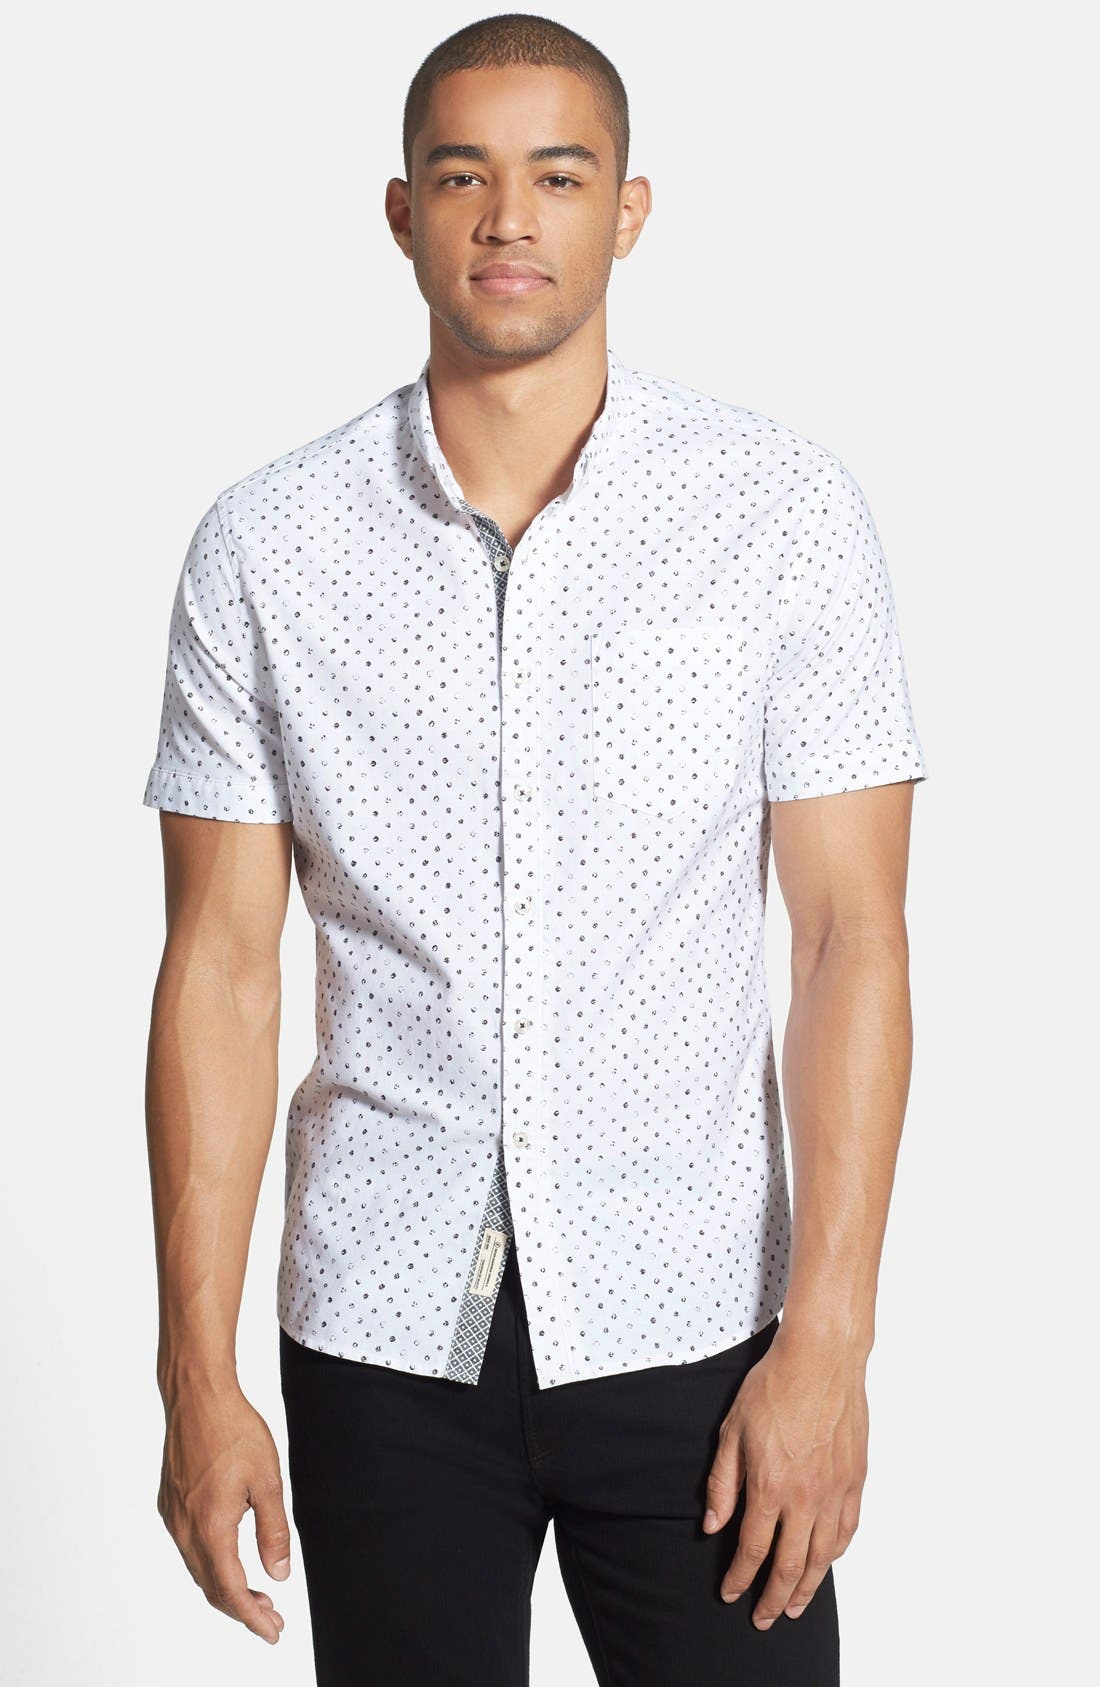 Alternate Image 1 Selected - 7 Diamonds 'Penny' Print Short Sleeve Woven Shirt